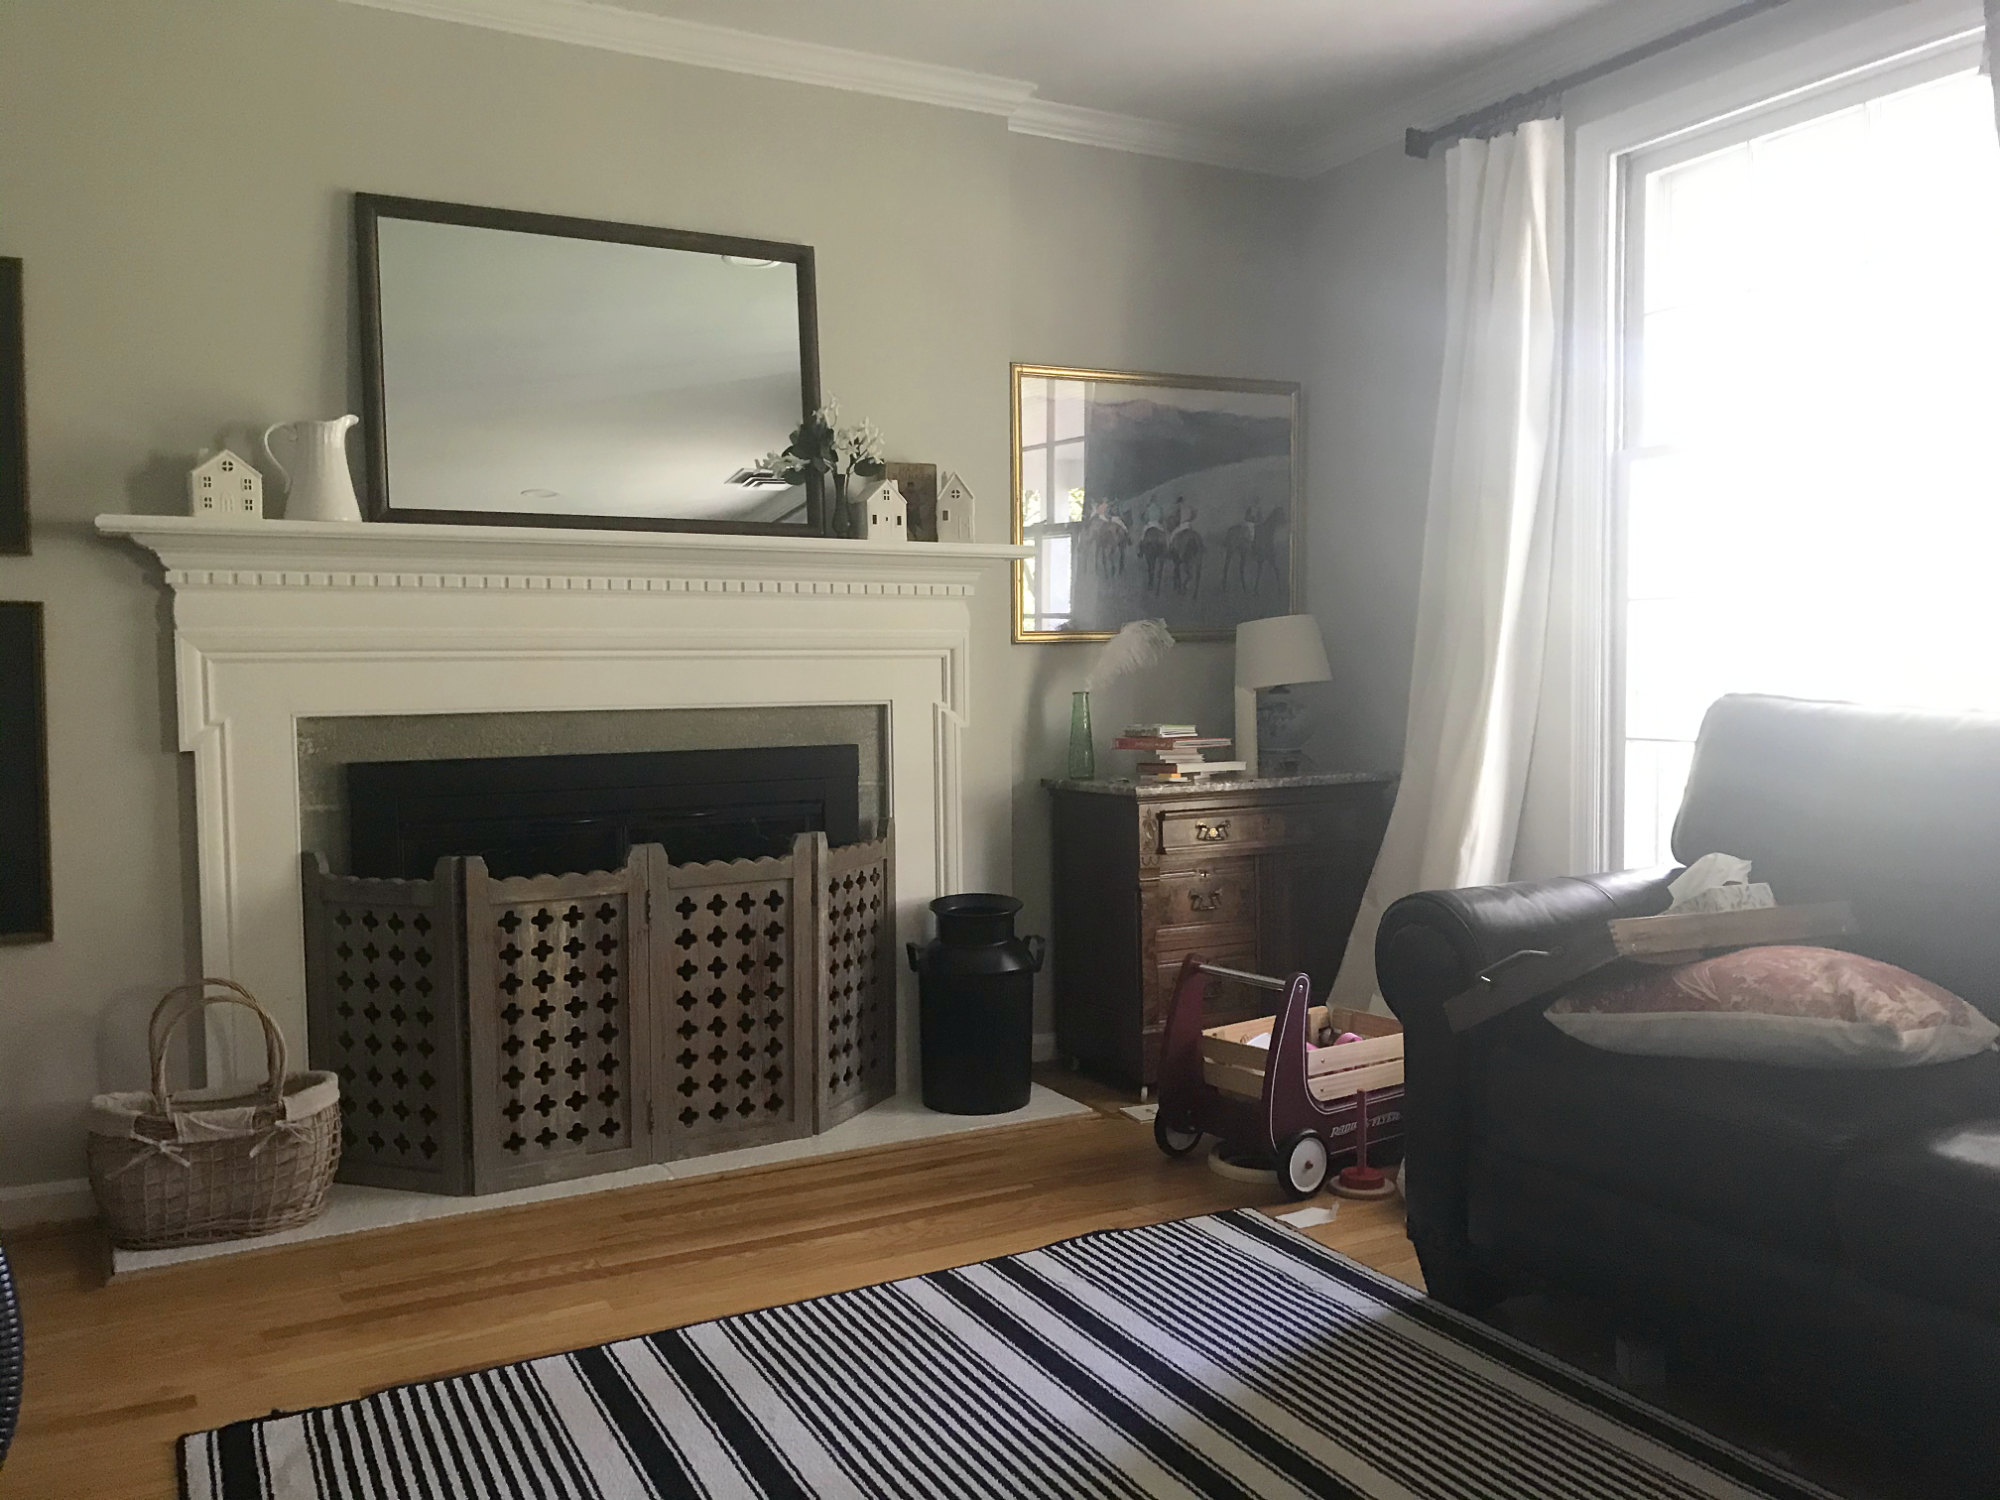 living room before black white striped rug in living room with mirror and ceramic houses on fireplace mantel